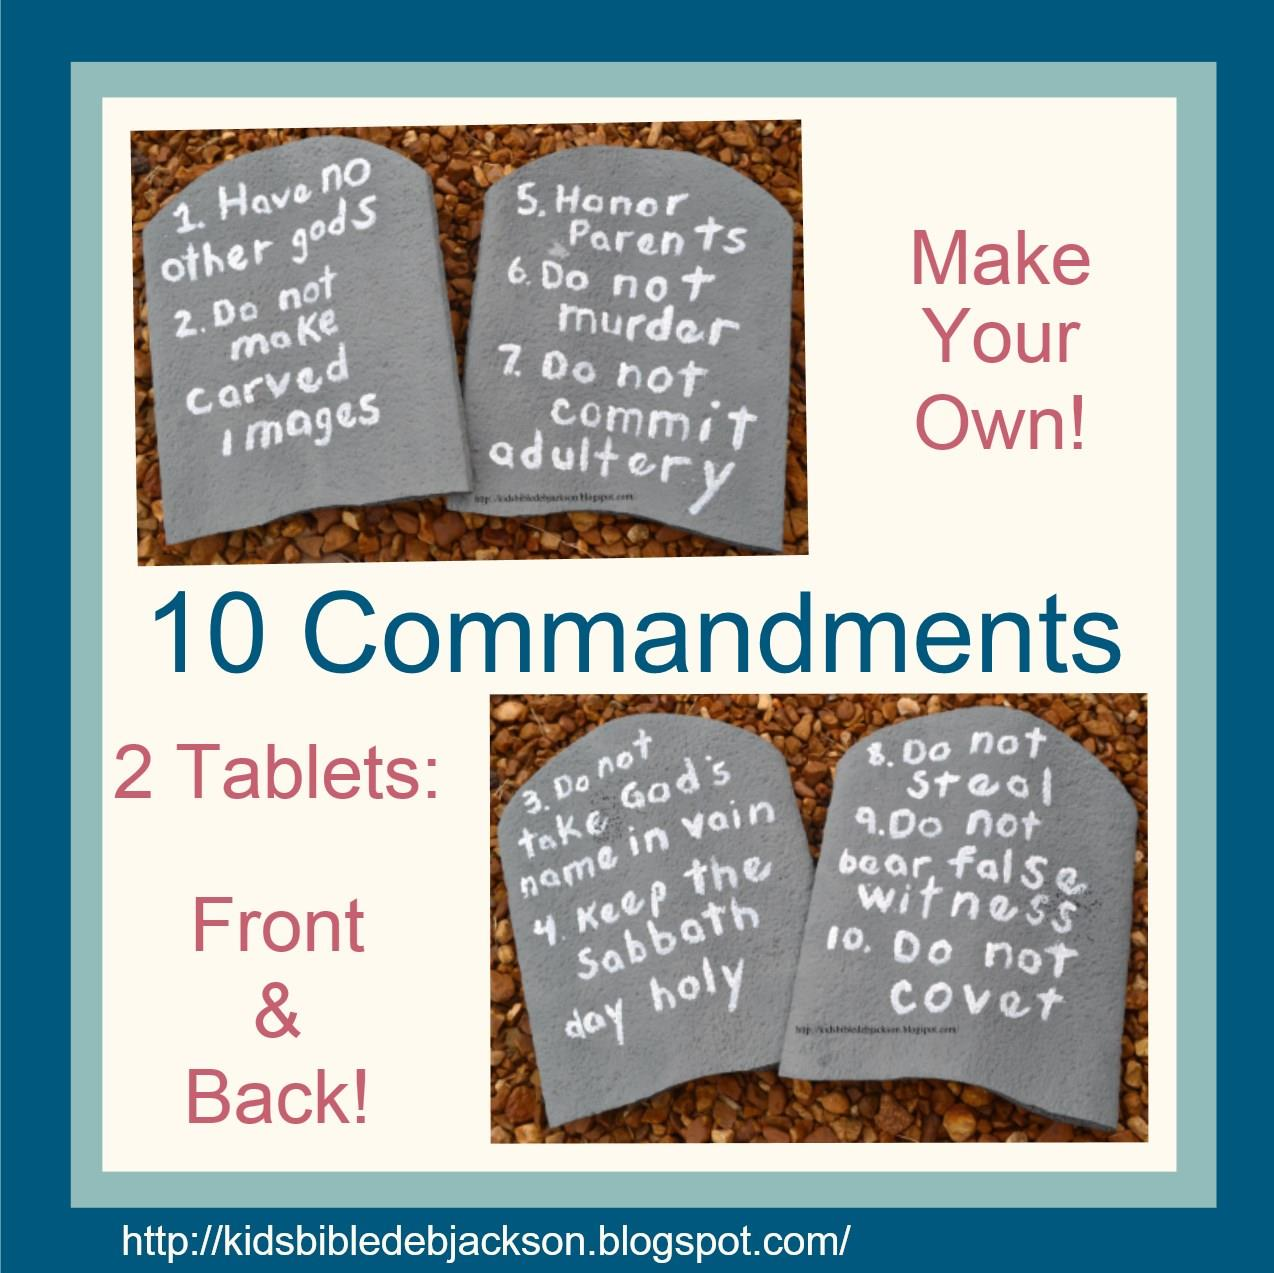 Make Your Own 10 Commandments visual!